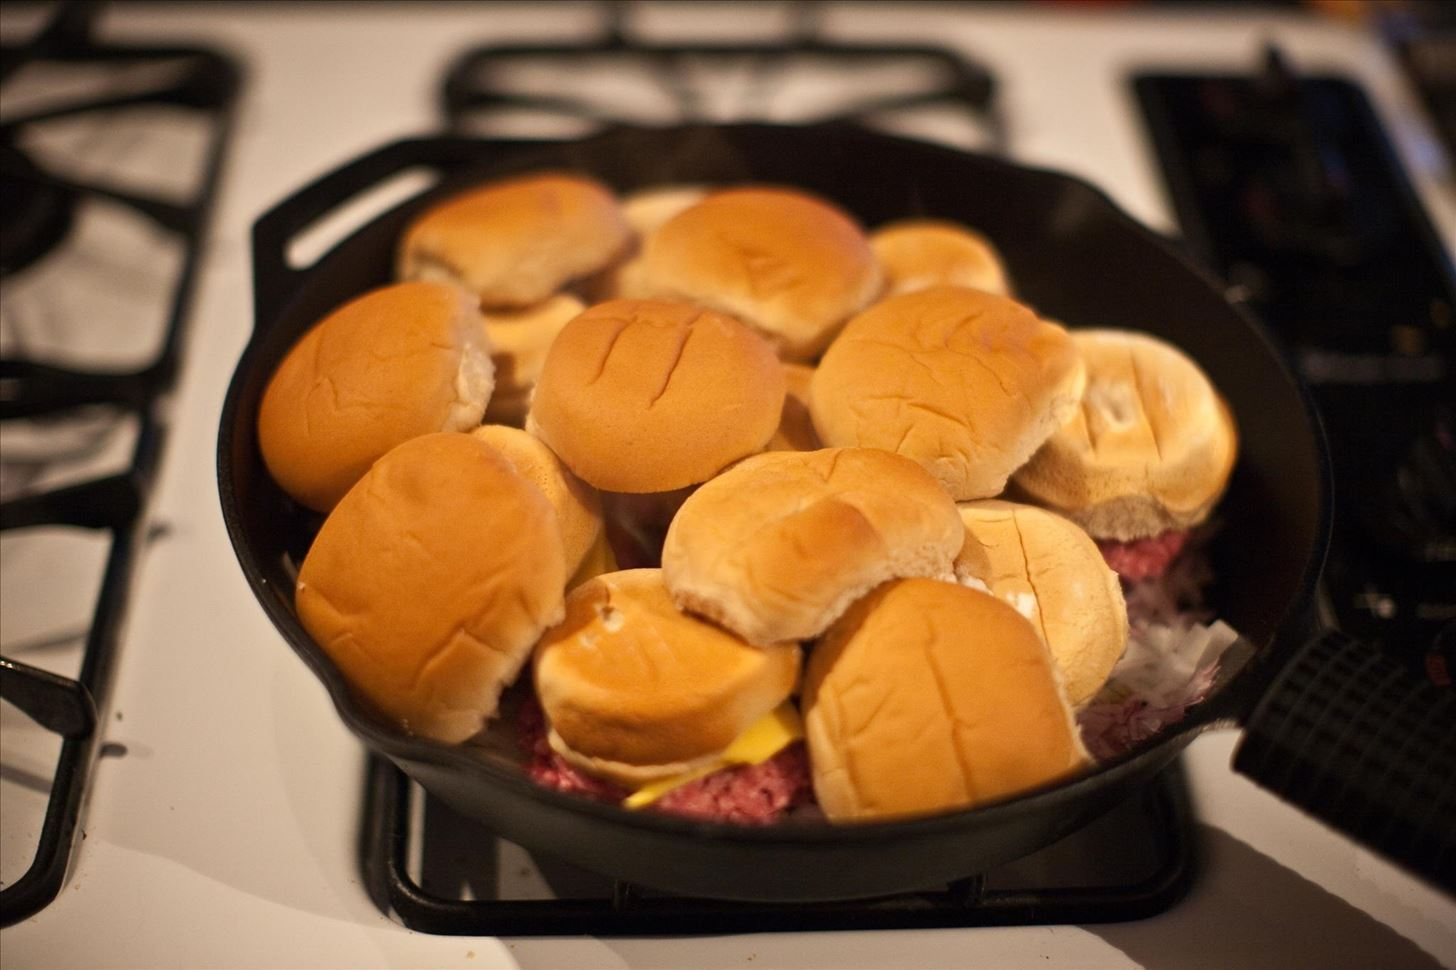 How to Make Perfectly Sized, Uniform Patties for Sliders & Mini Burgers Without Getting Your Hands Dirty